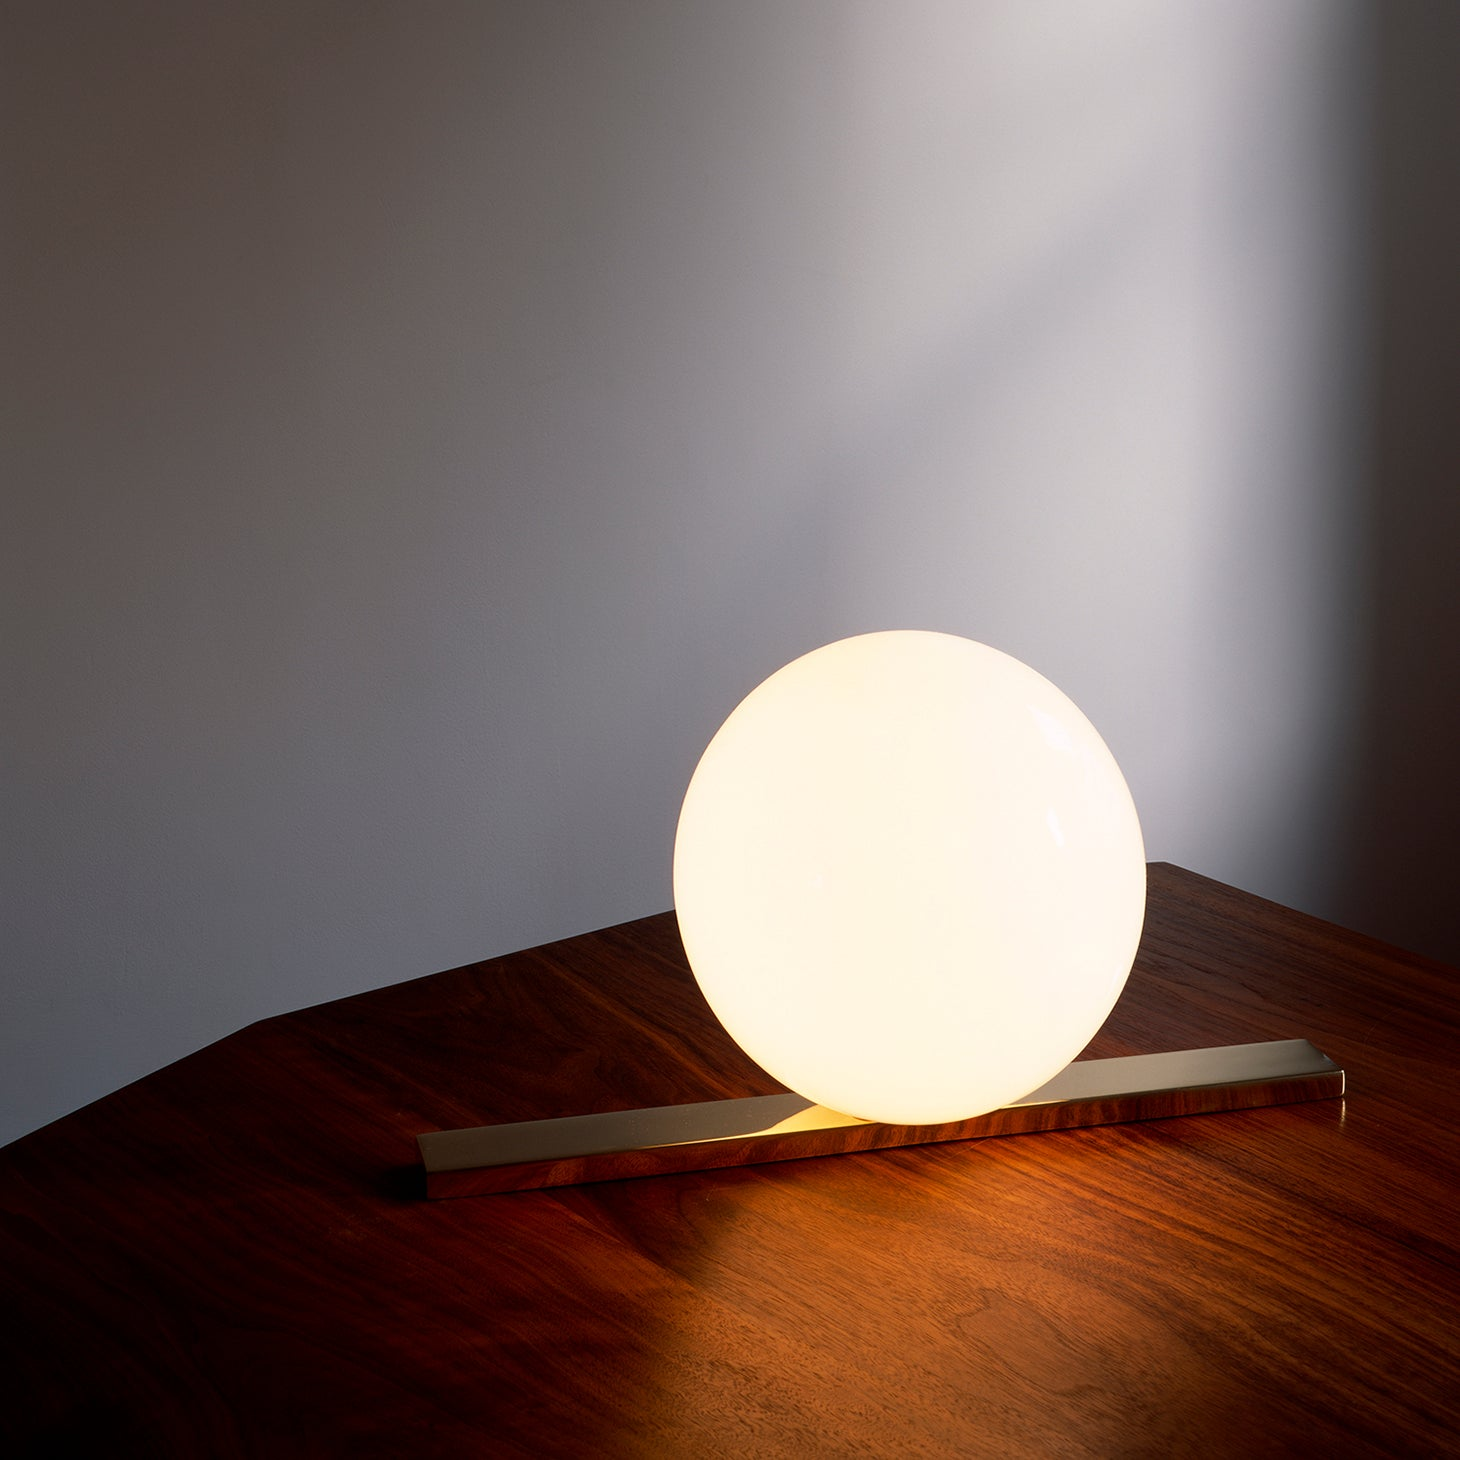 Get Set Lighting Michael Anastassiades Designer Furniture Sku: 717-160-10031